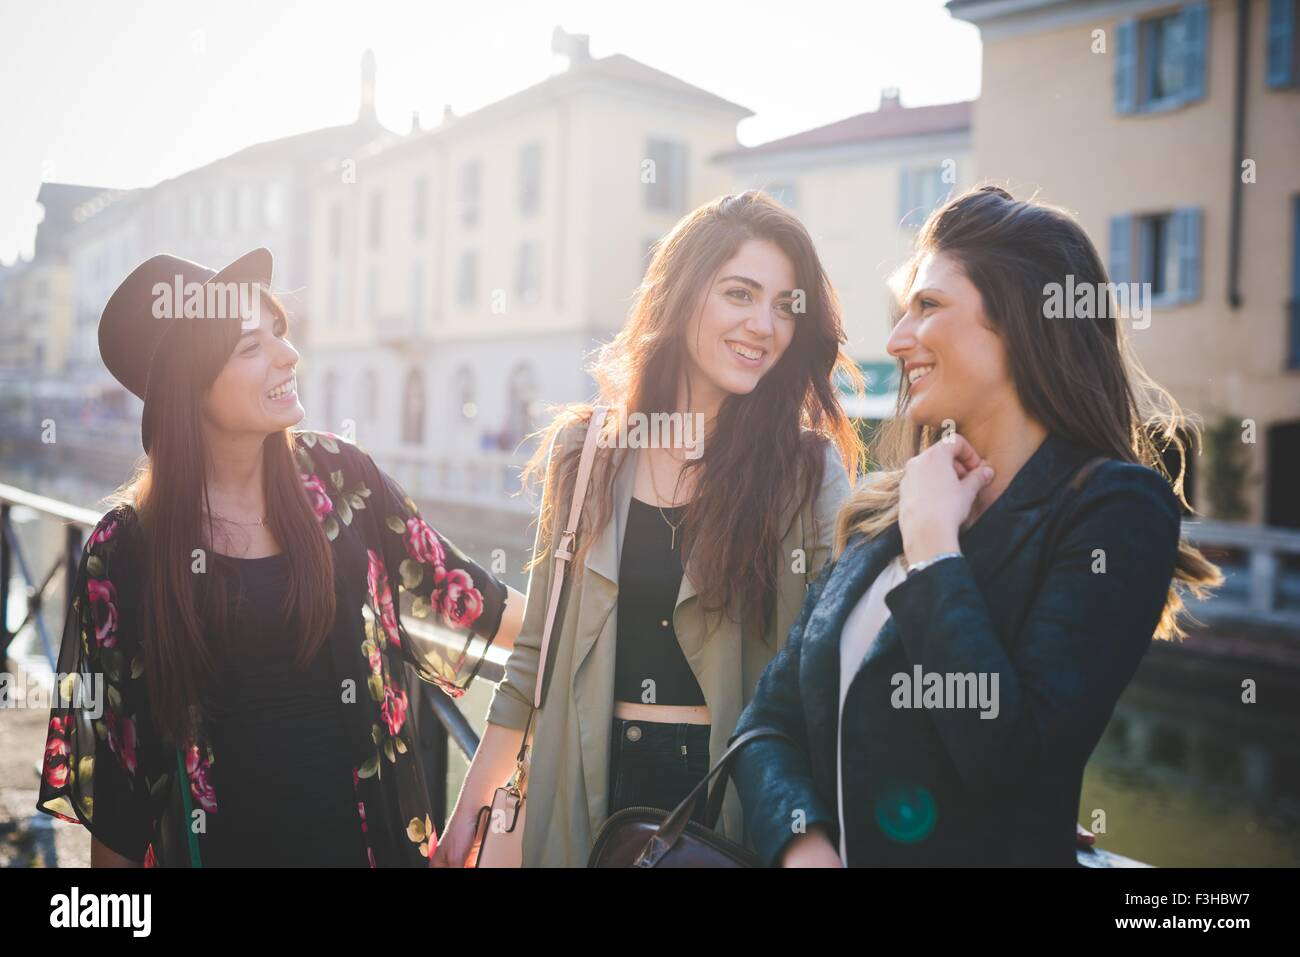 Tre giovani donne in chat sul canal waterfront Immagini Stock